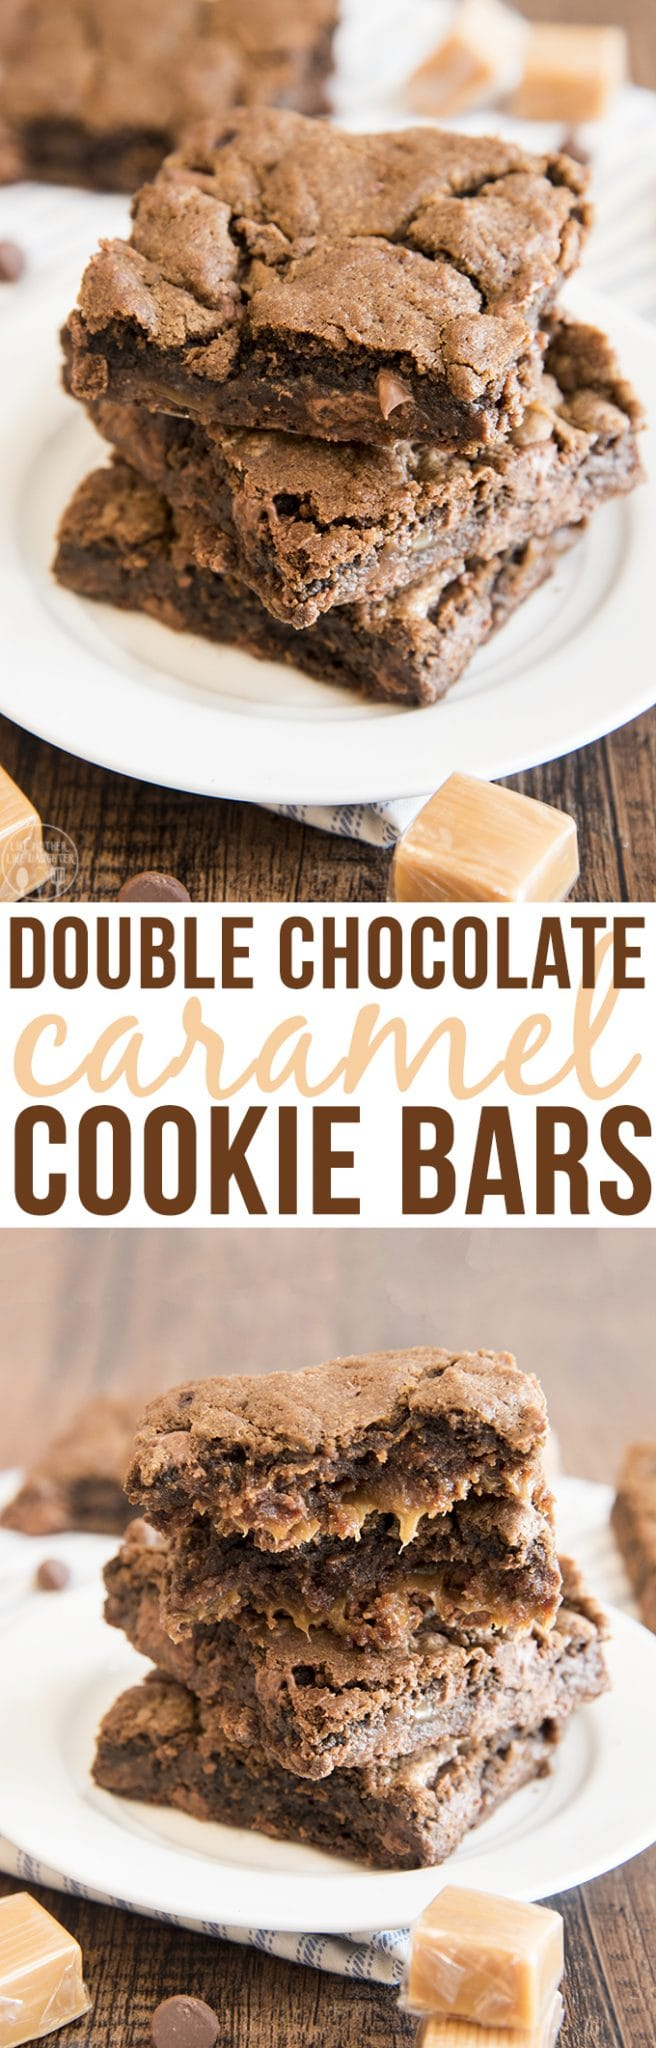 chocolate caramel cookie bars have two layers of chocolate cookie ...